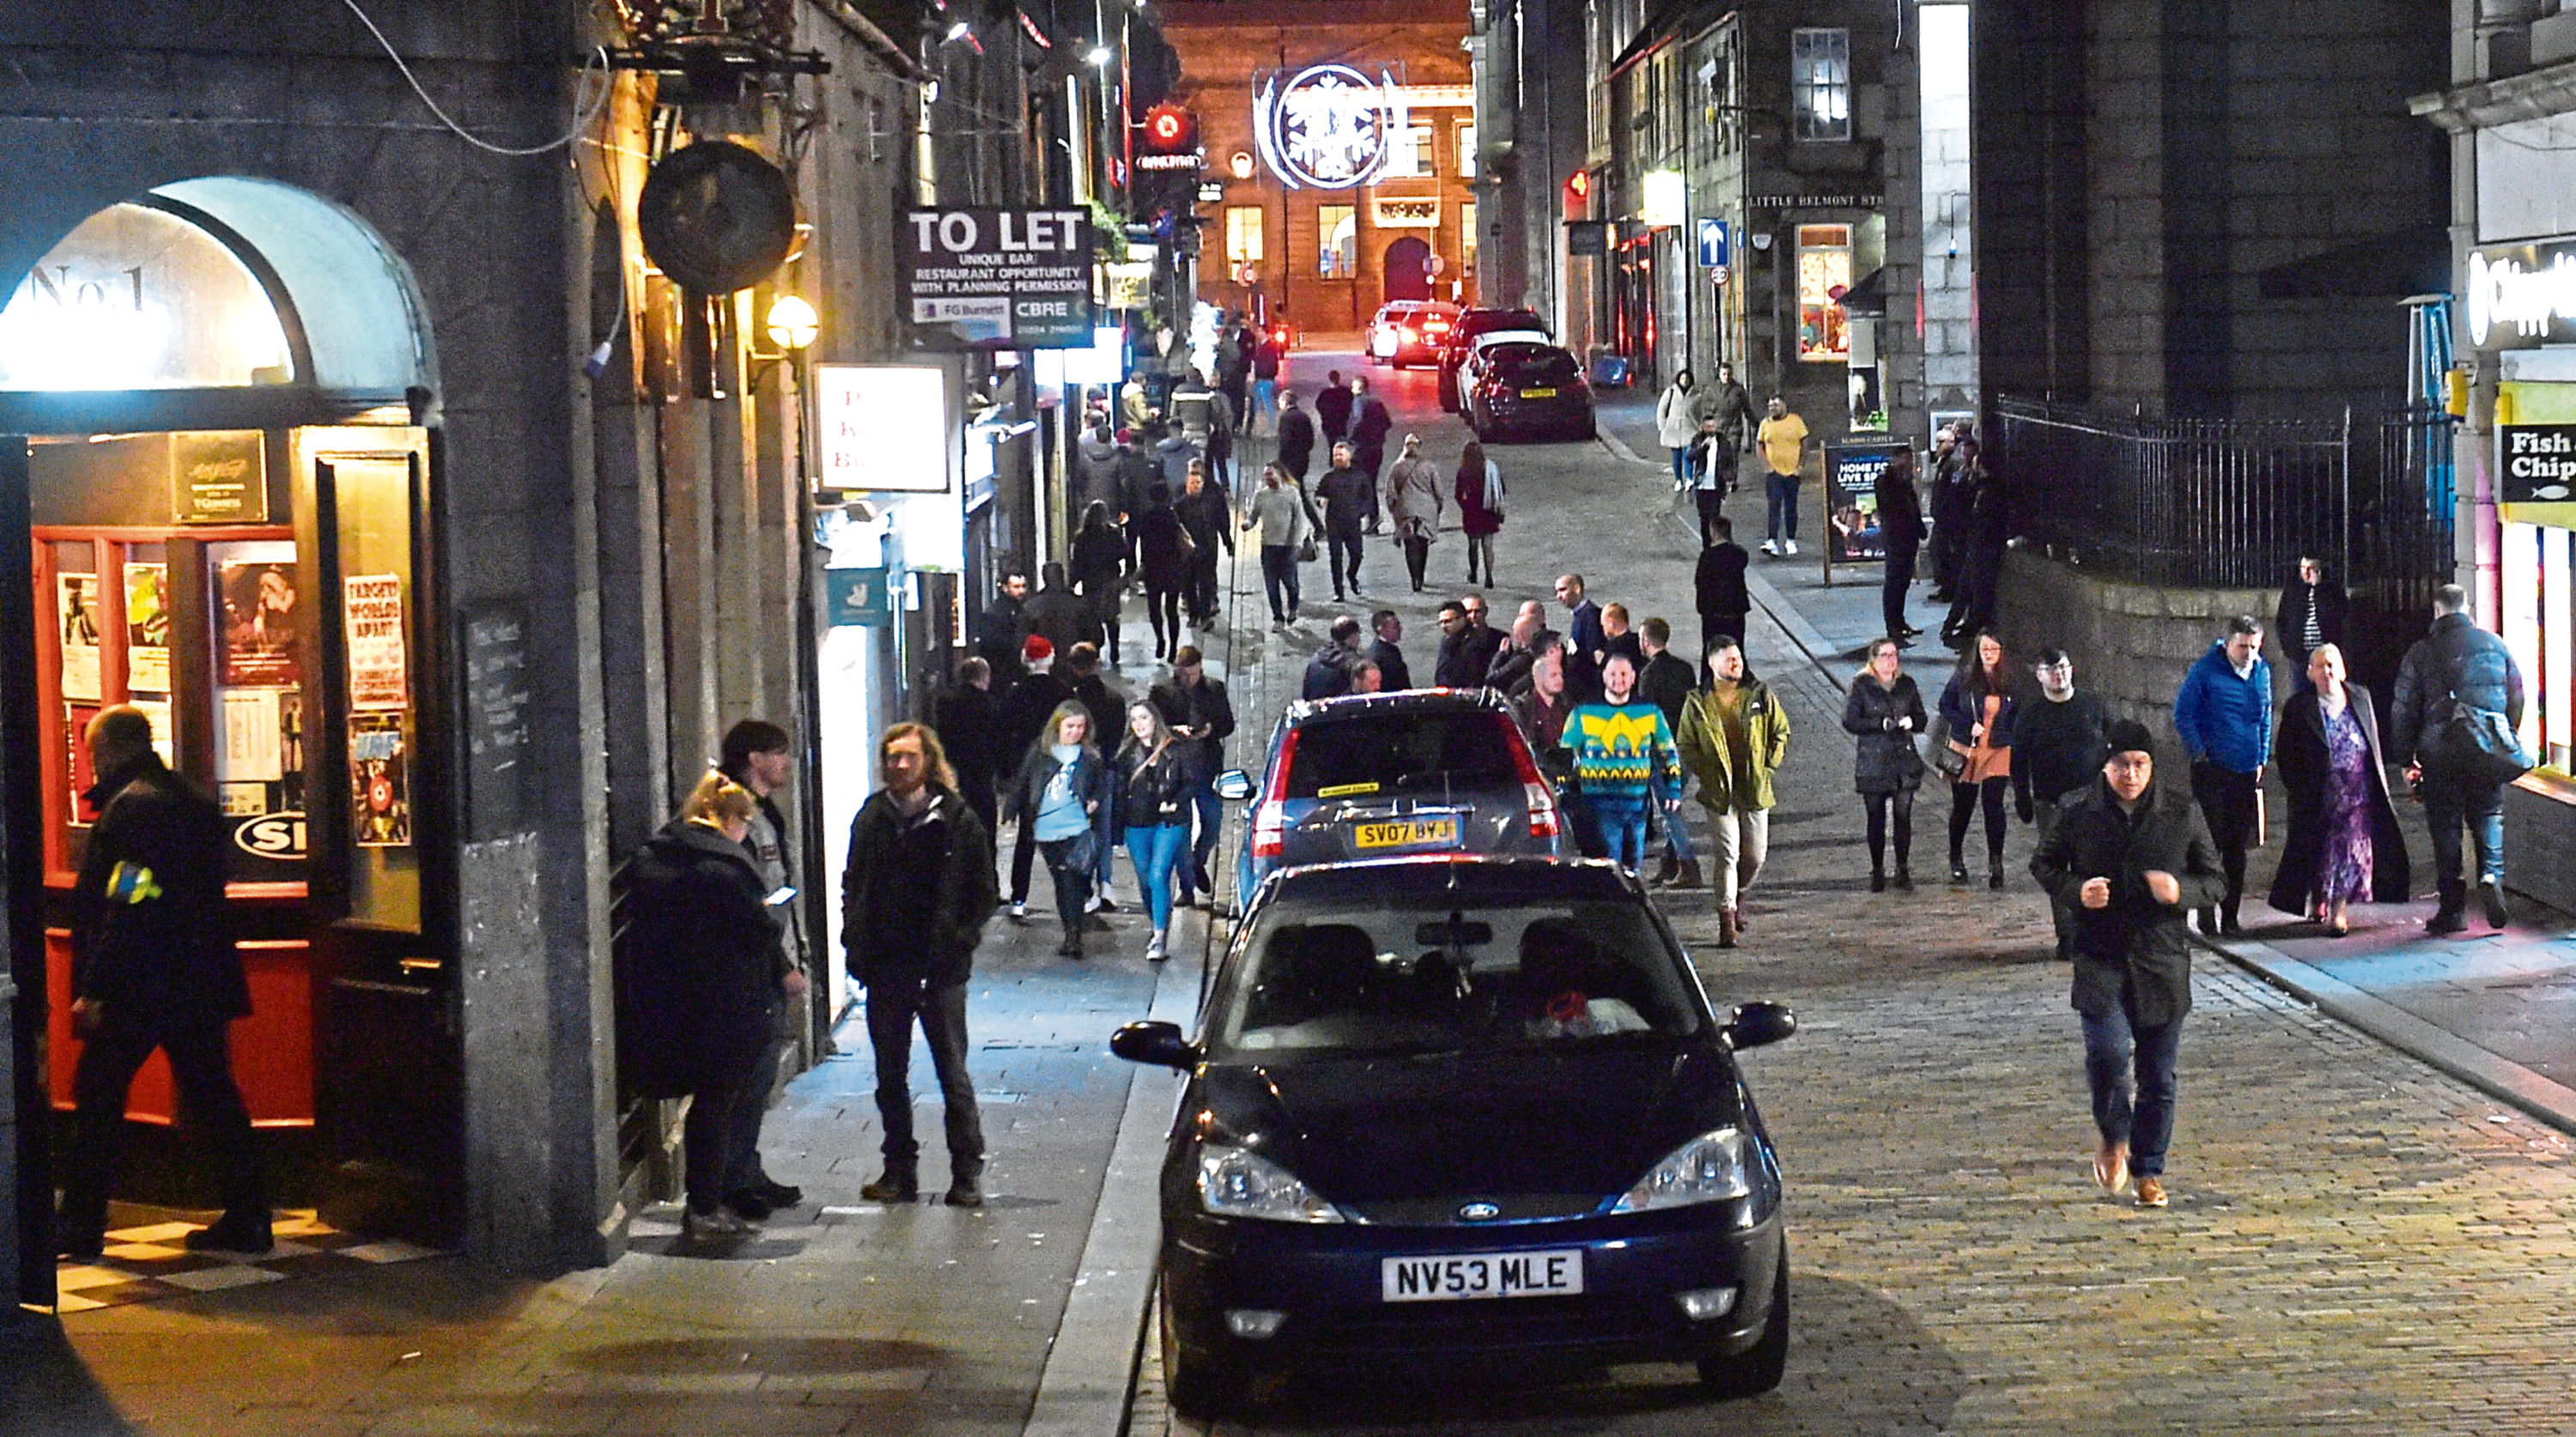 Revellers in Aberdeen city centre on Friday